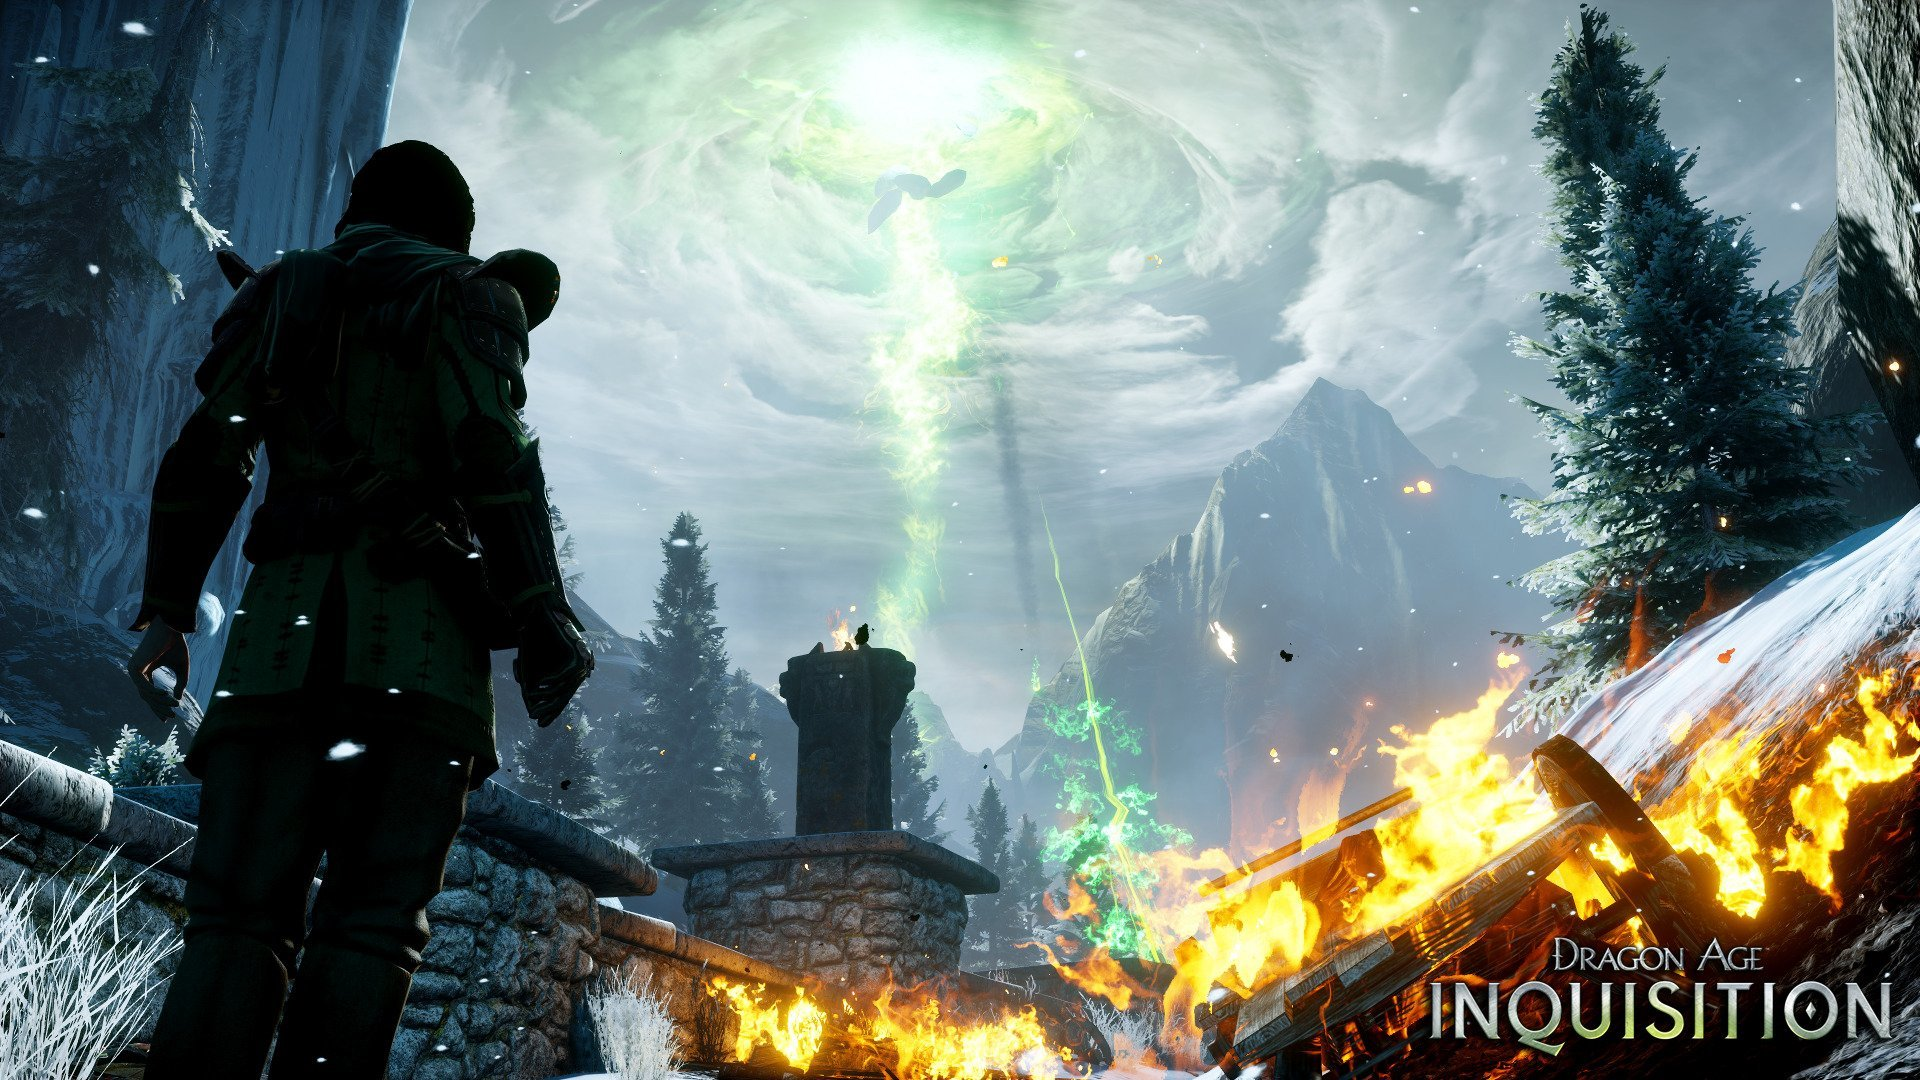 Download Hd 1920x1080 Dragon Age Inquisition Desktop Wallpaper ID204625 For Free